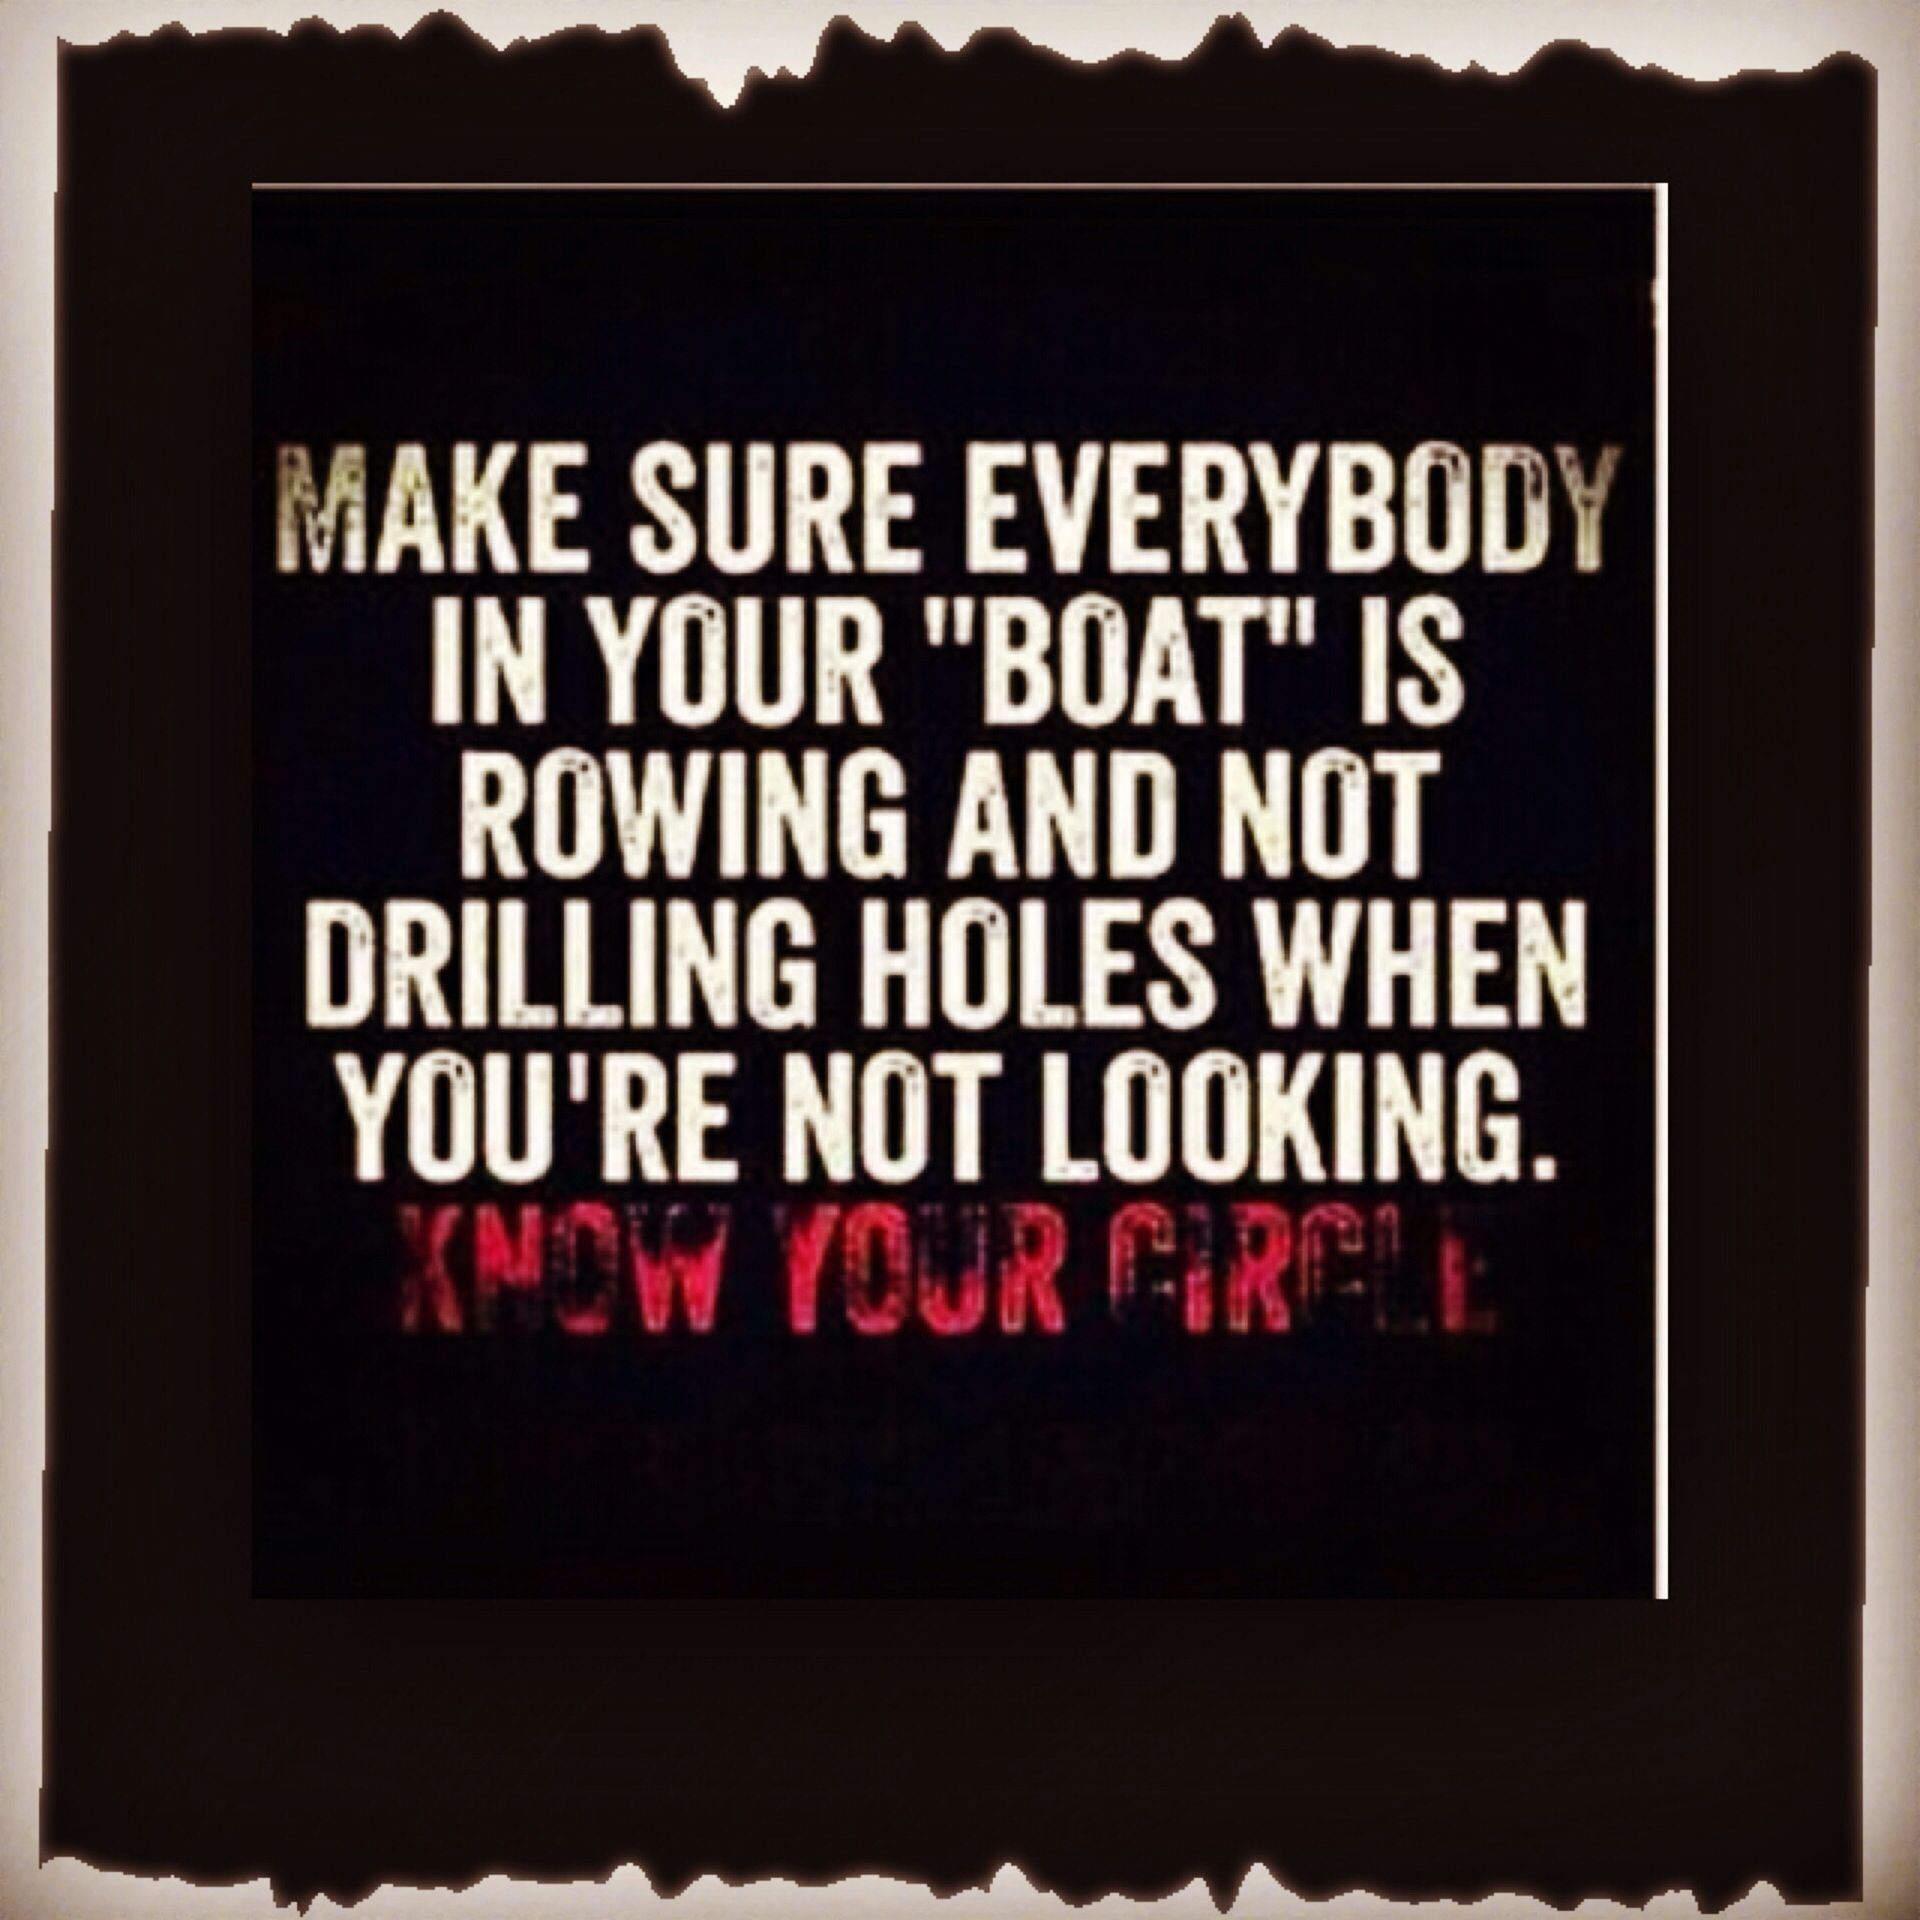 Row, row, row your boat gently down the stream... Merrily, merrily ...